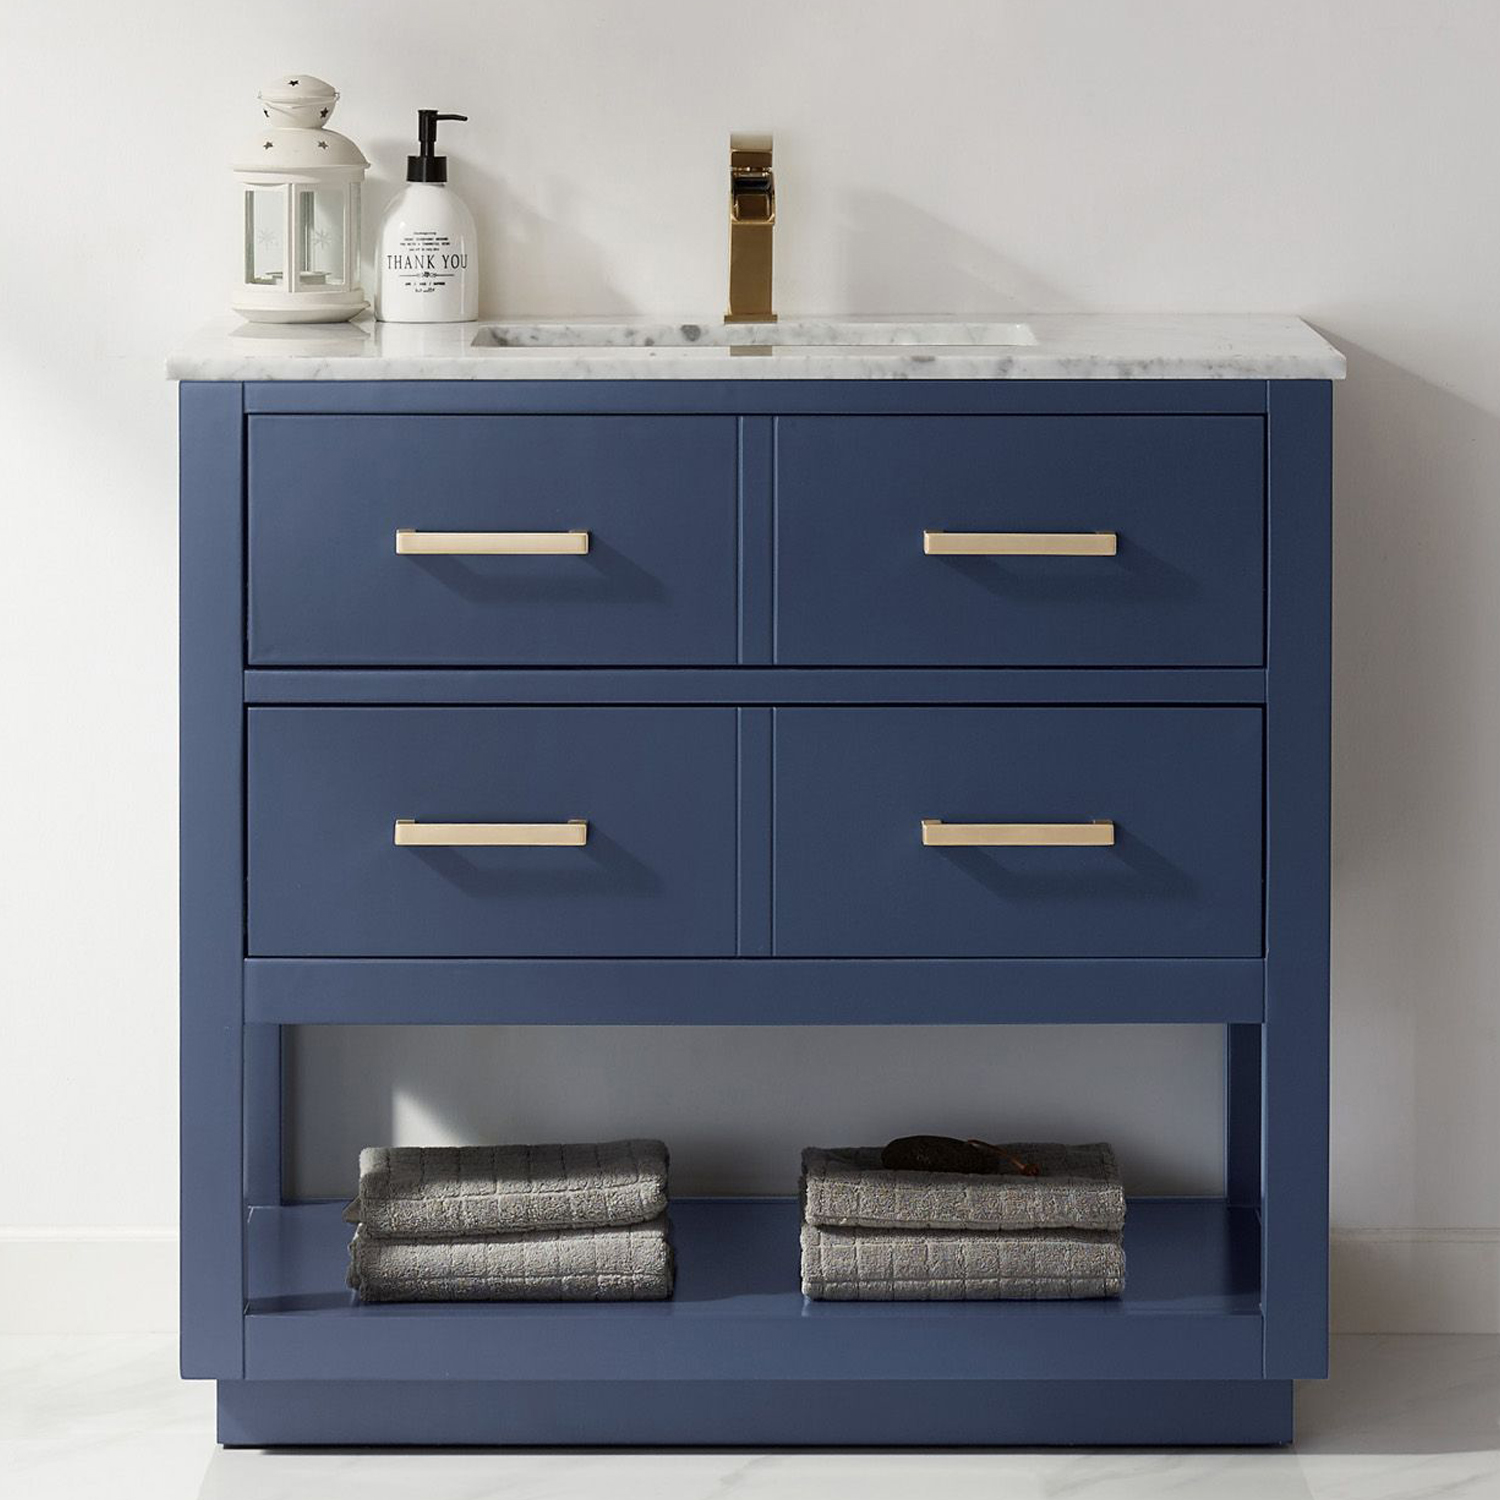 "Issac Edwards Collection 36"" Single Bathroom Vanity Set in Royal Blue and Carrara White Marble Countertop with Mirror Options"